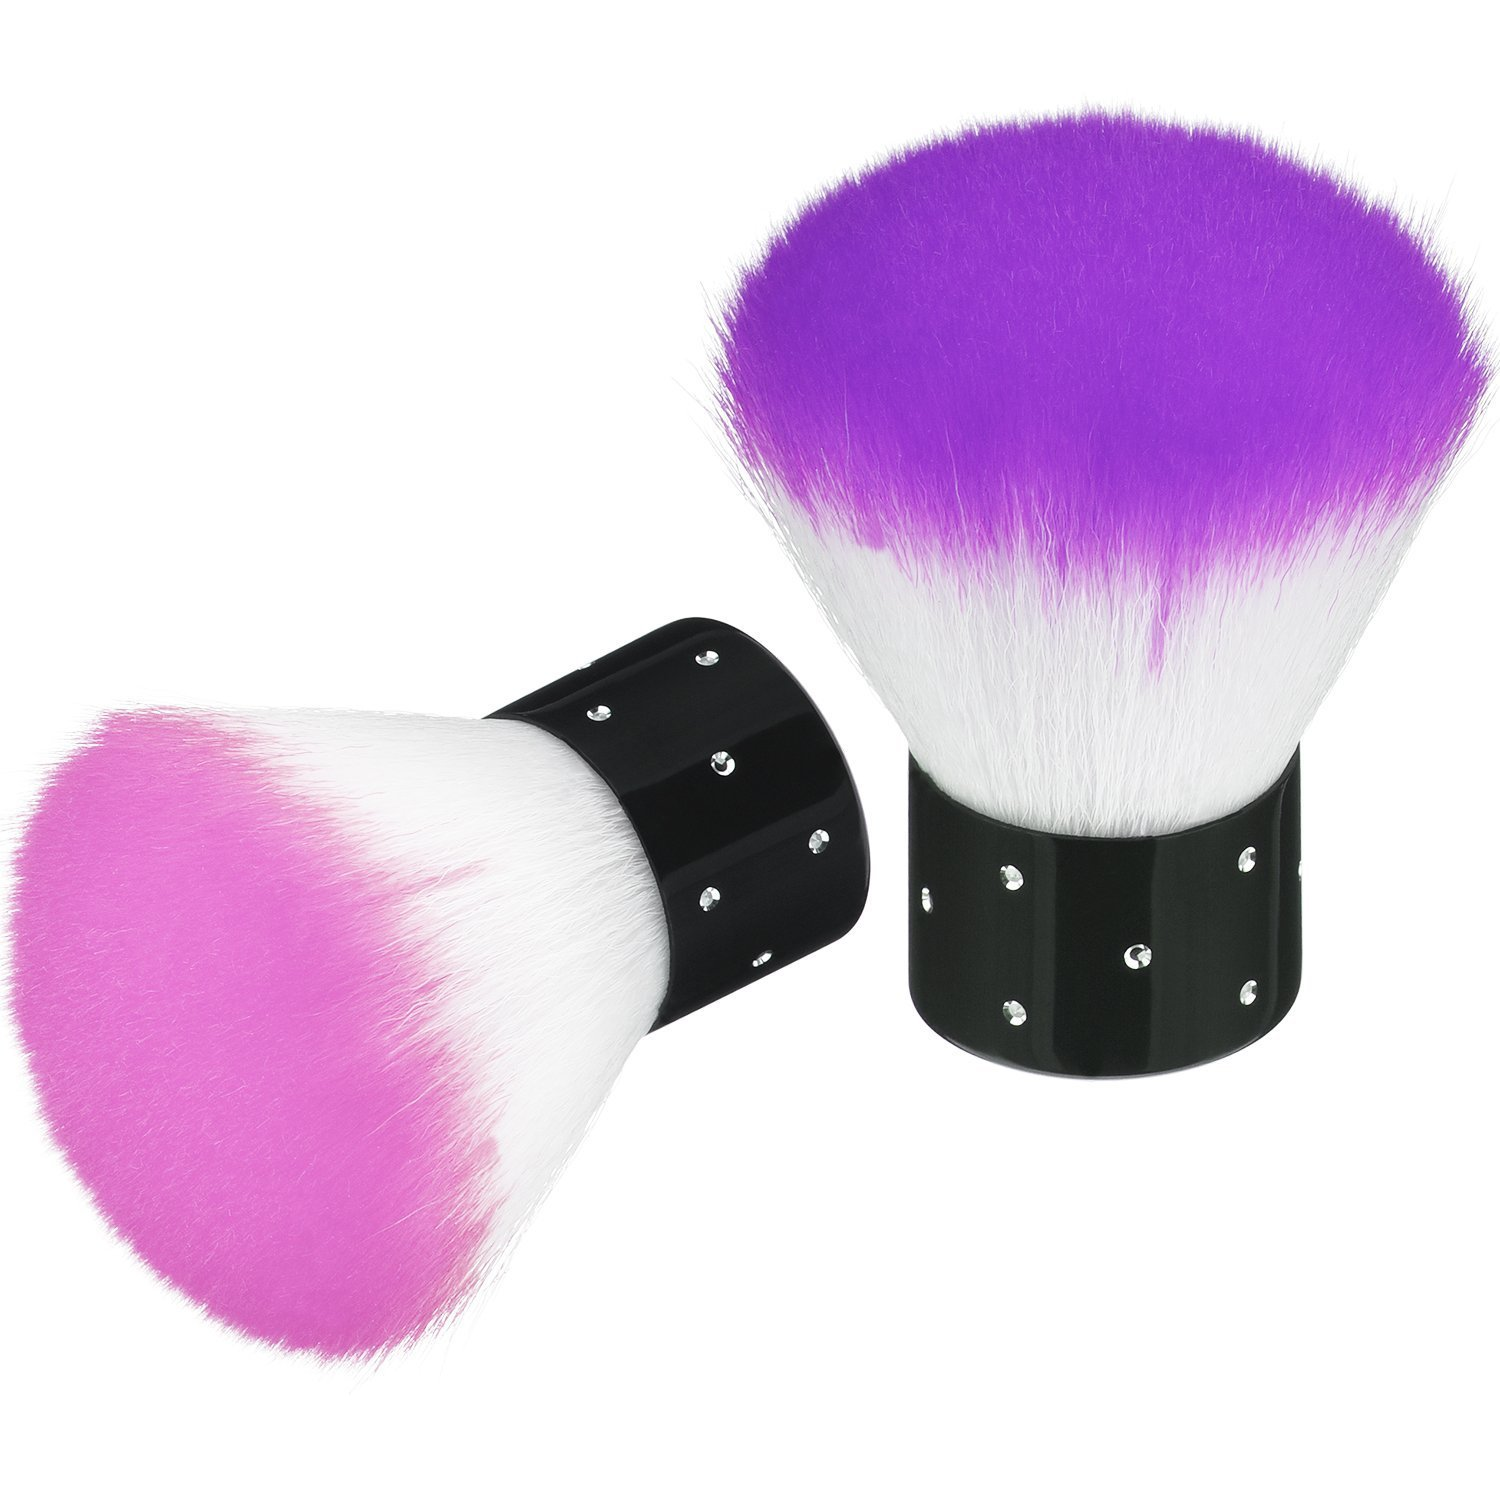 2 Pieces Colorful Soft Kabuki Brushes Nail Arts Dust Cleaner Brush for Makeup or Nail Arts (Purple, Pink): Beauty